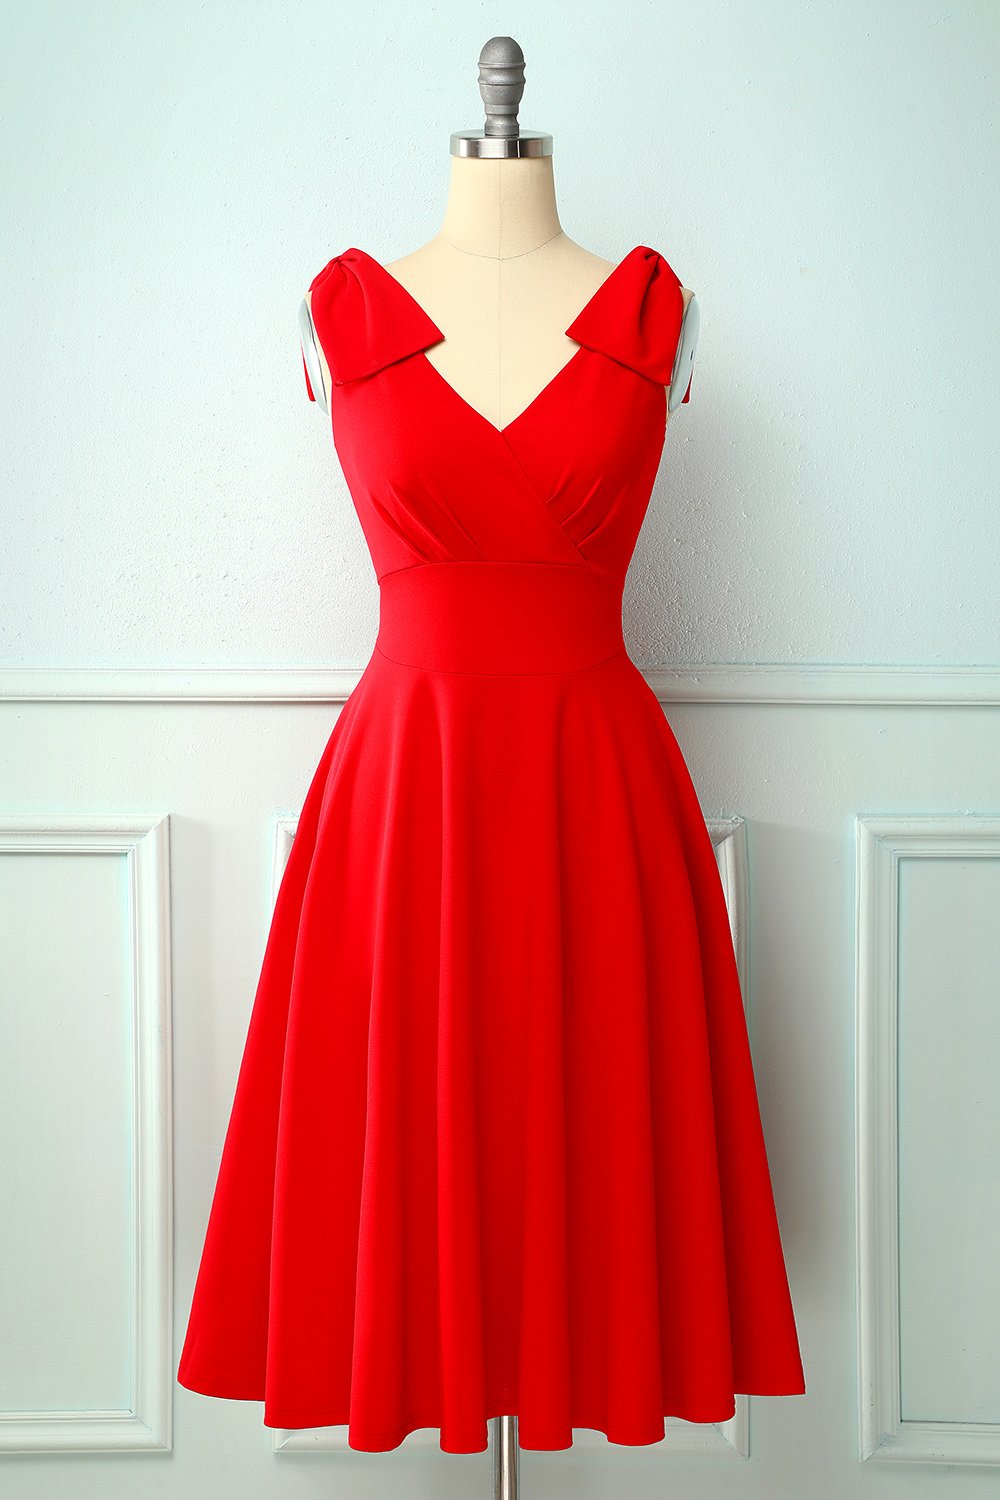 Vintage Red Dress With A Red Bow Pockets